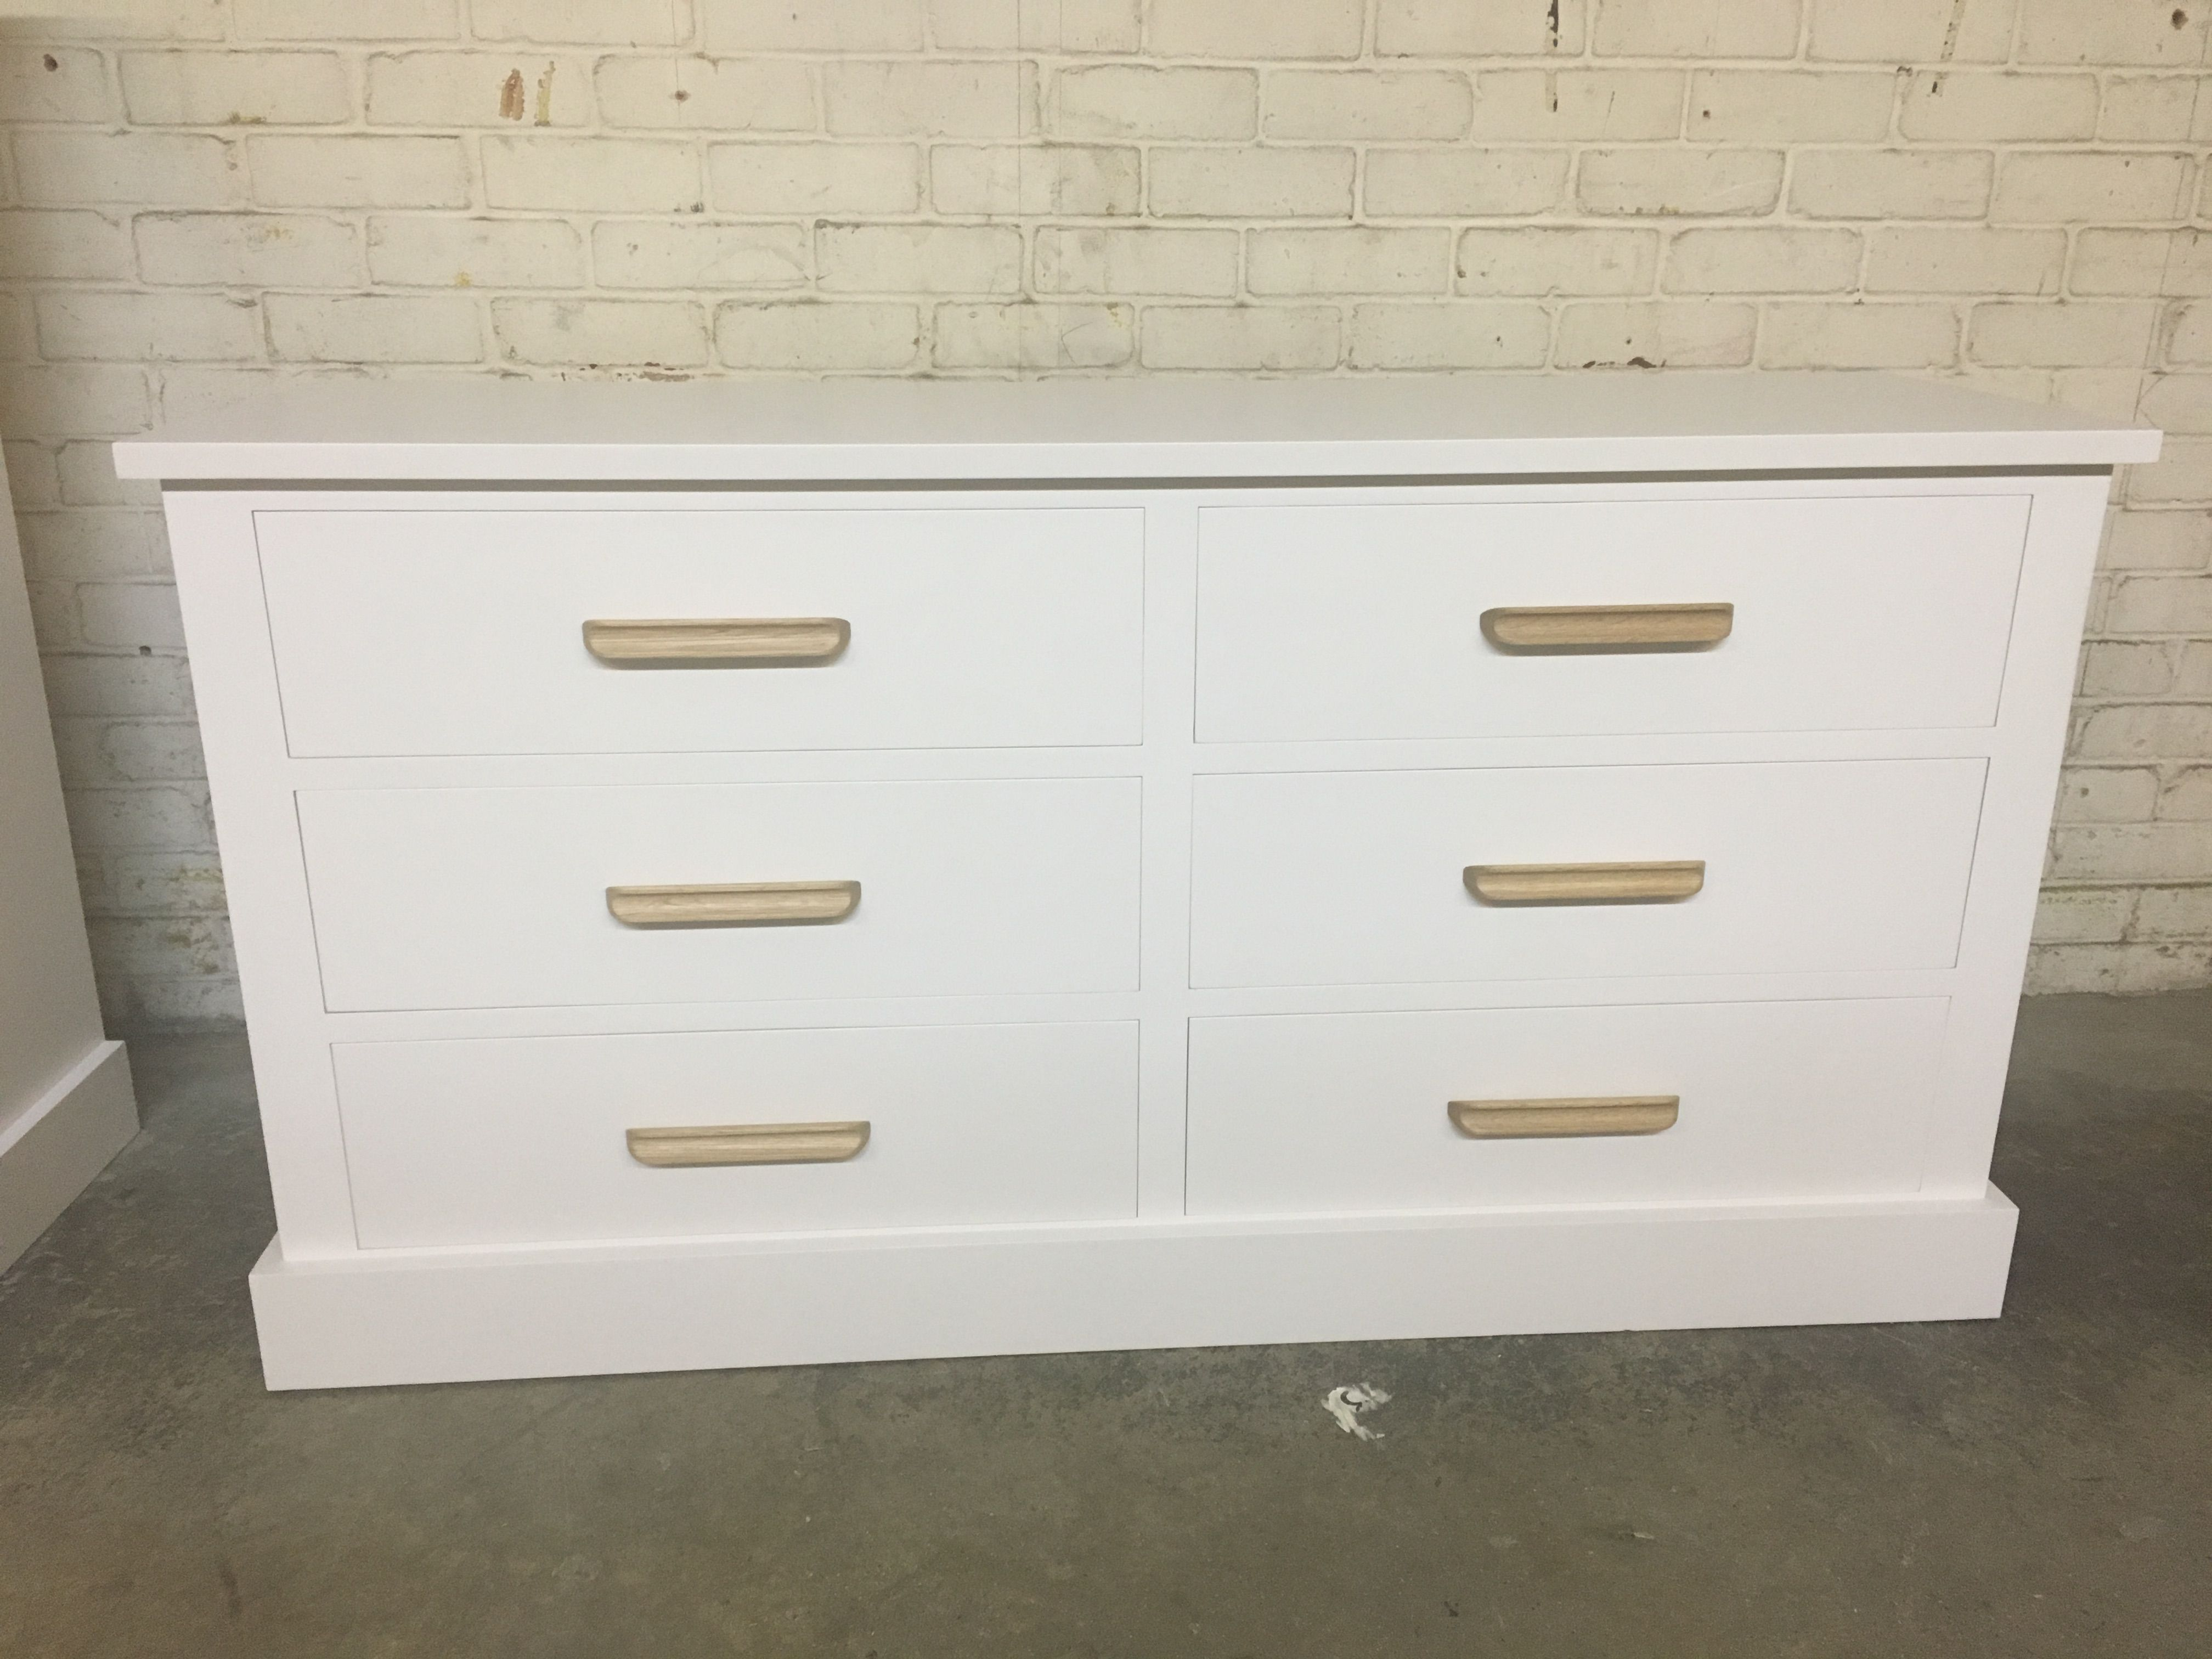 One Of Our Deep Drawer Chests Painted White With Oak Bar Handles We Love It Www Cobwebsfurniture Co Uk Dresser Drawers Dresser Drawers [ 3024 x 4032 Pixel ]